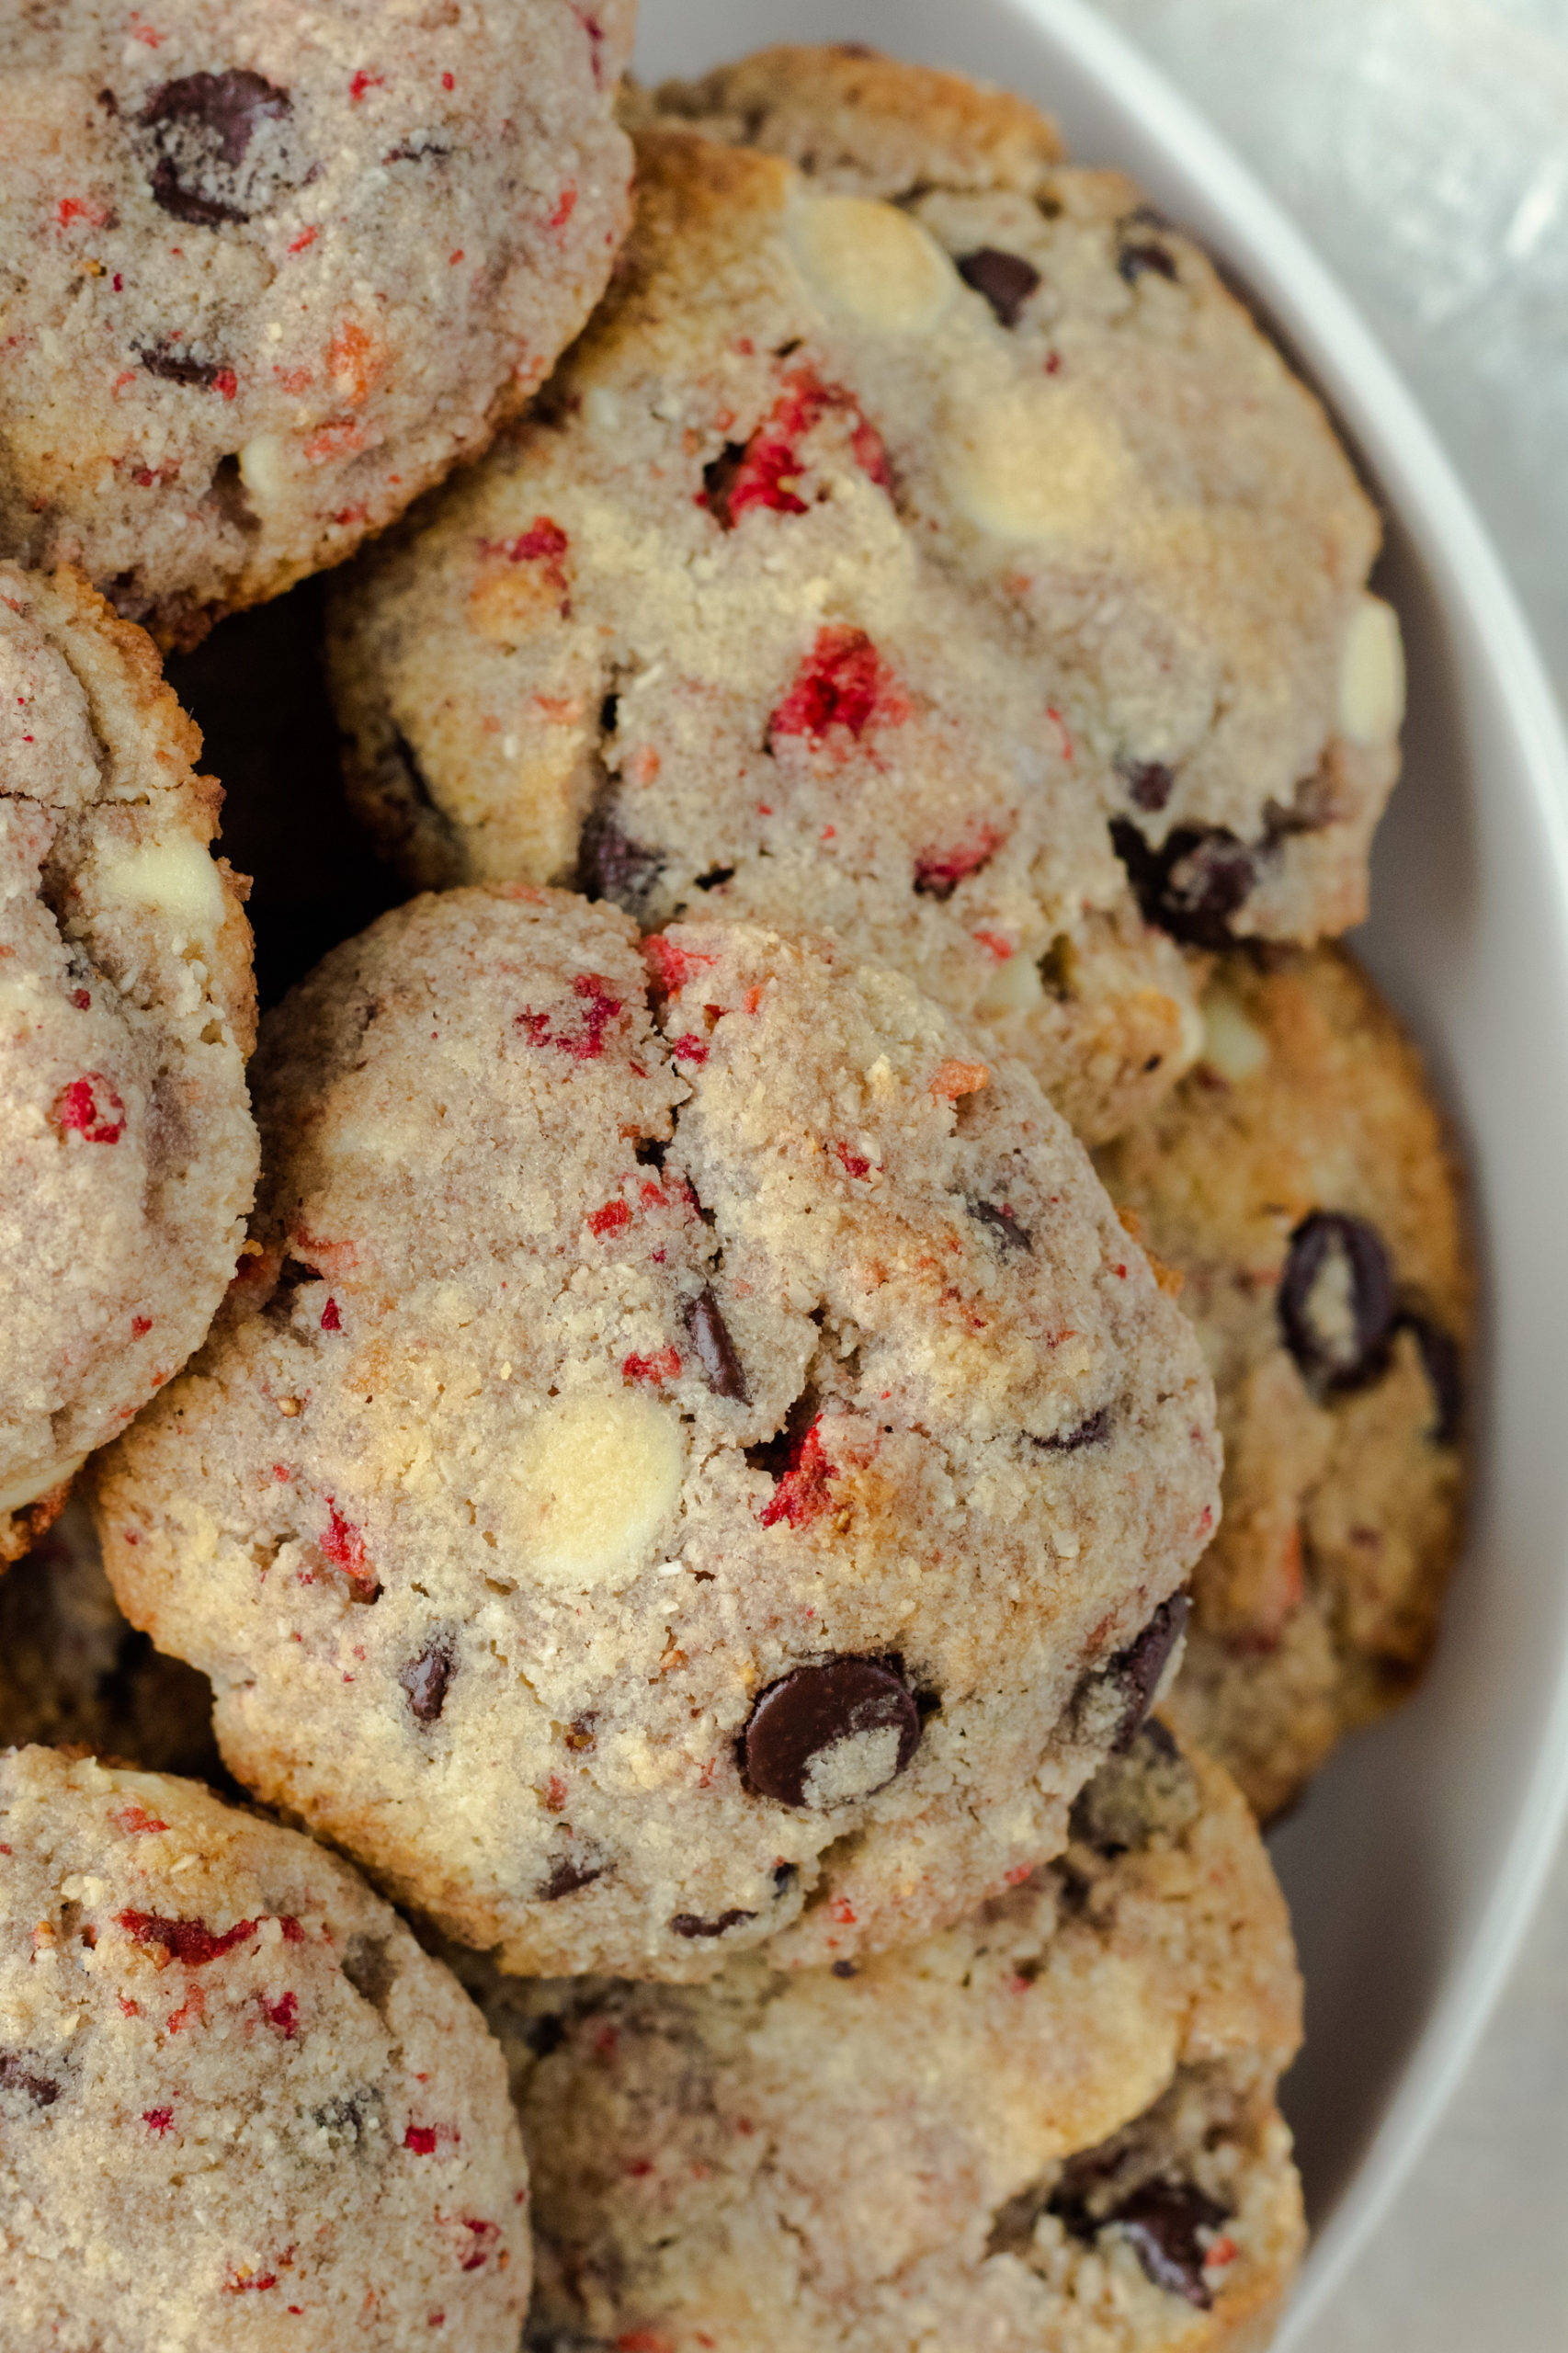 Low carb cookies with strawberries, dark chocolate, and white chocolate chips.